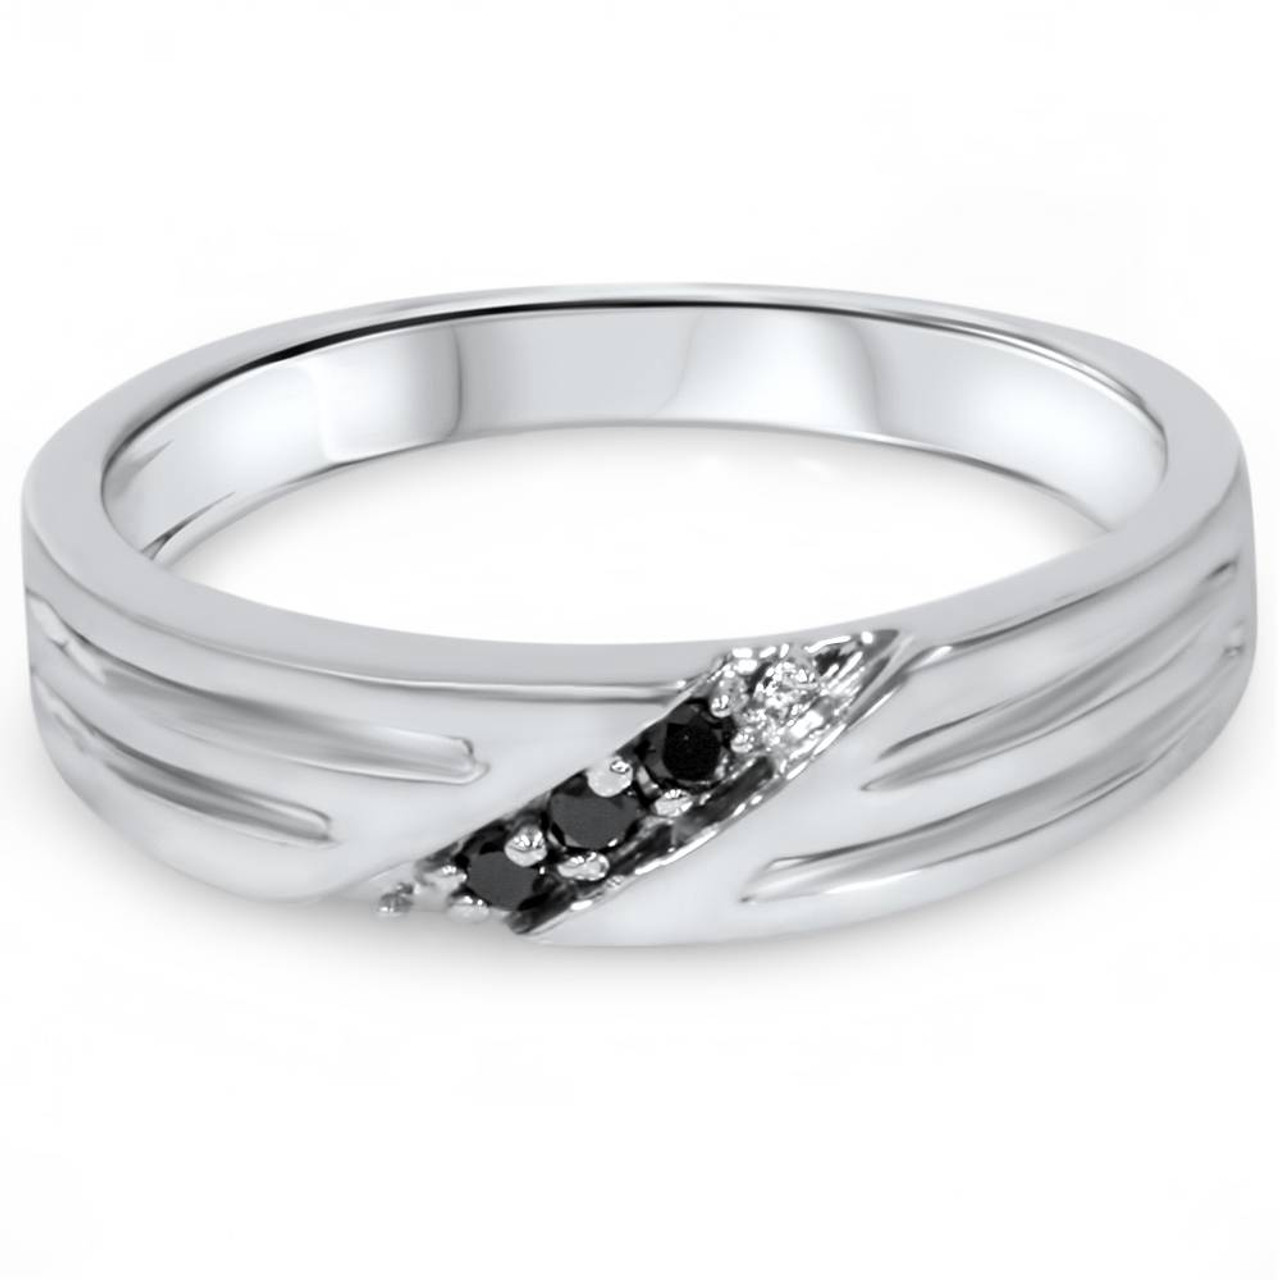 Black Diamond Mens Wedding Band Ring 14k White Gold Aaa Wr1505blk Sd3d71ba2asa5ozcloudfront53000589imageswr1505blk11: Gold Black Diamond Wedding Bands At Reisefeber.org